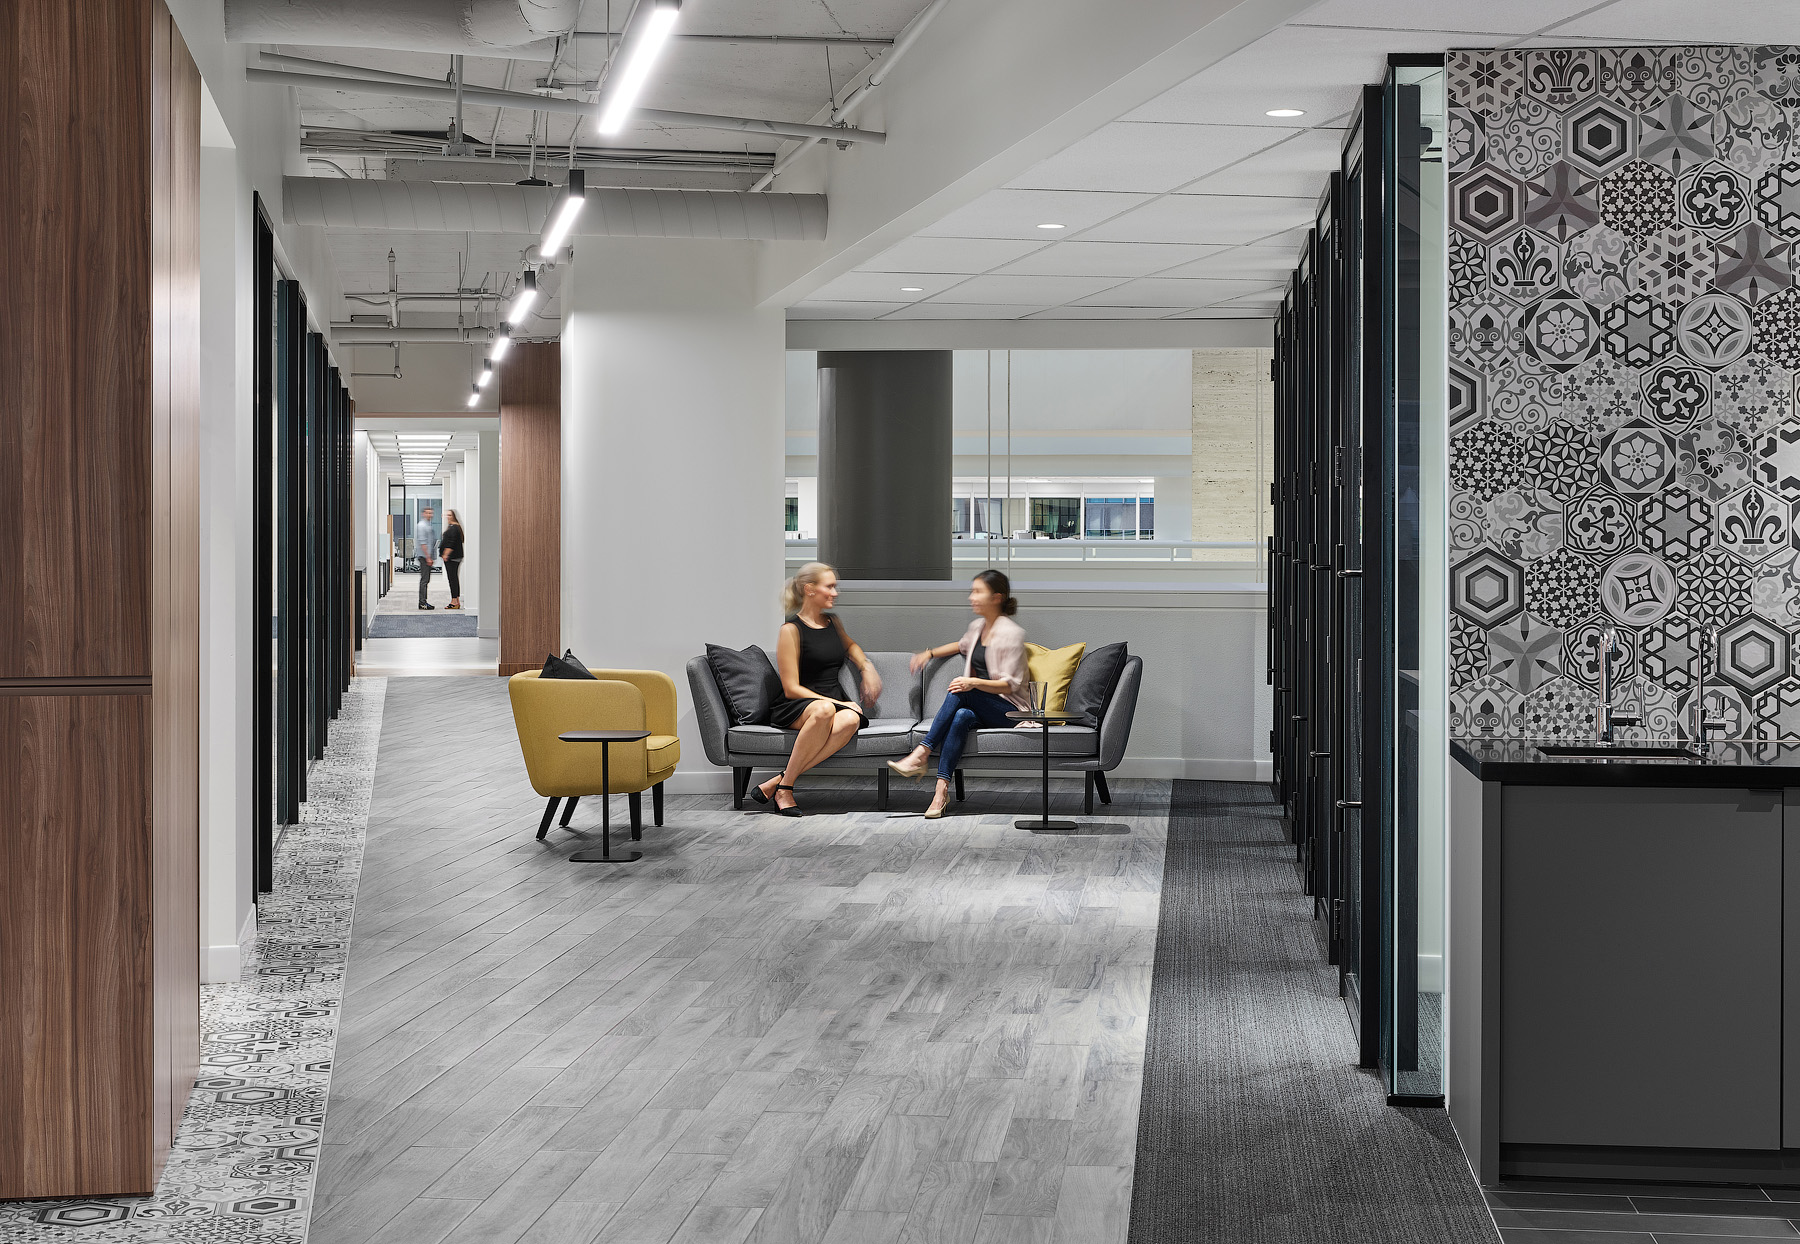 Optimus Toronto seating area with grey wood floors, patterned wall tile, and yellow and grey chairs